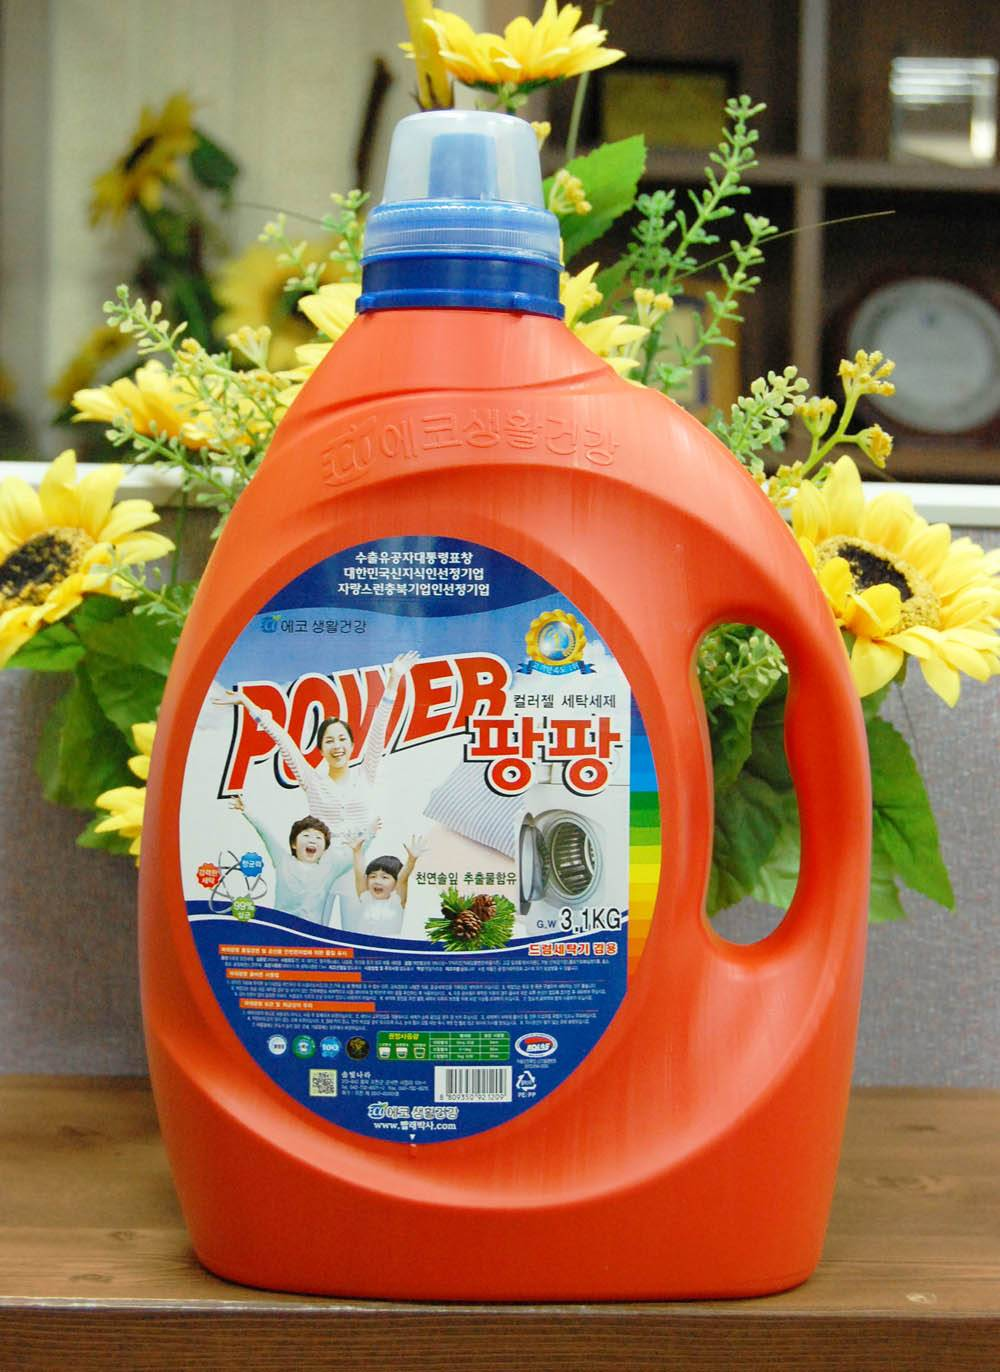 Power PangPang (Laundry Detergent)